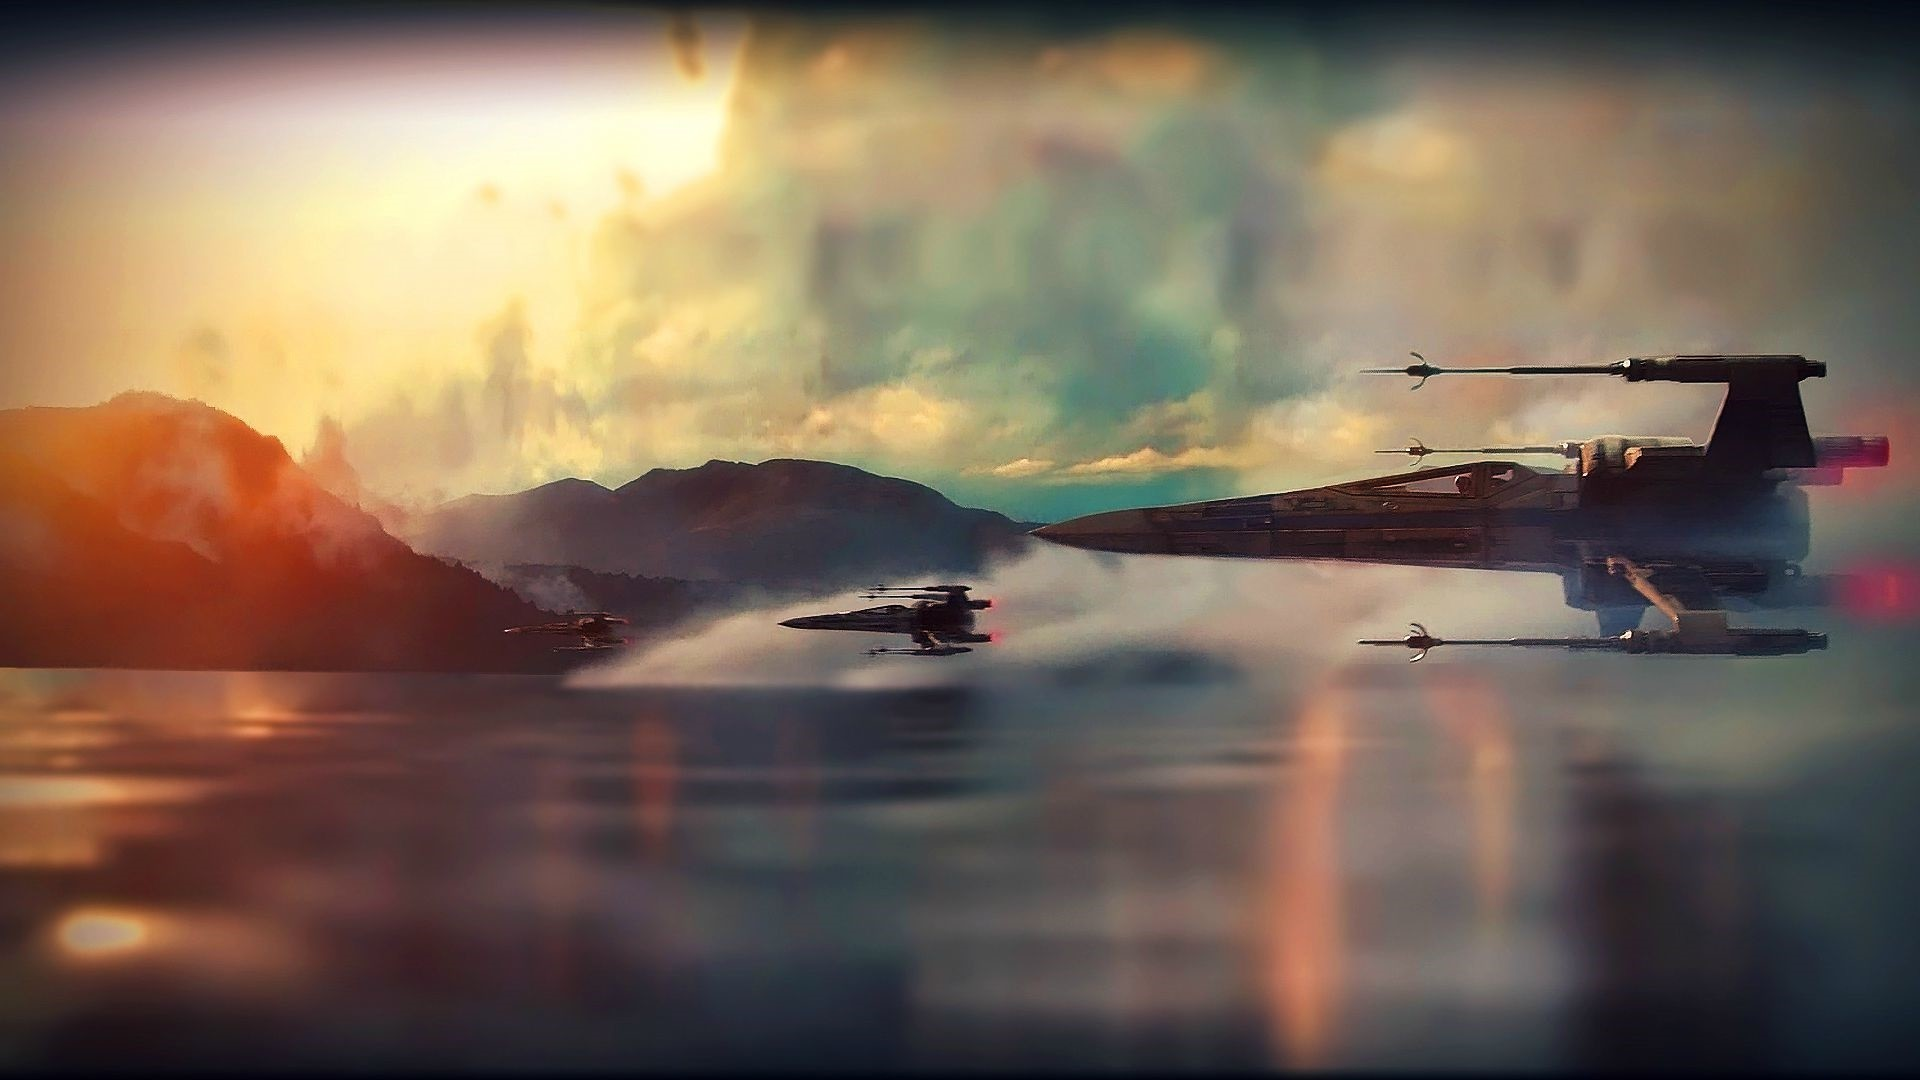 Star Wars The Force Awakens Wallpapers High Quality .